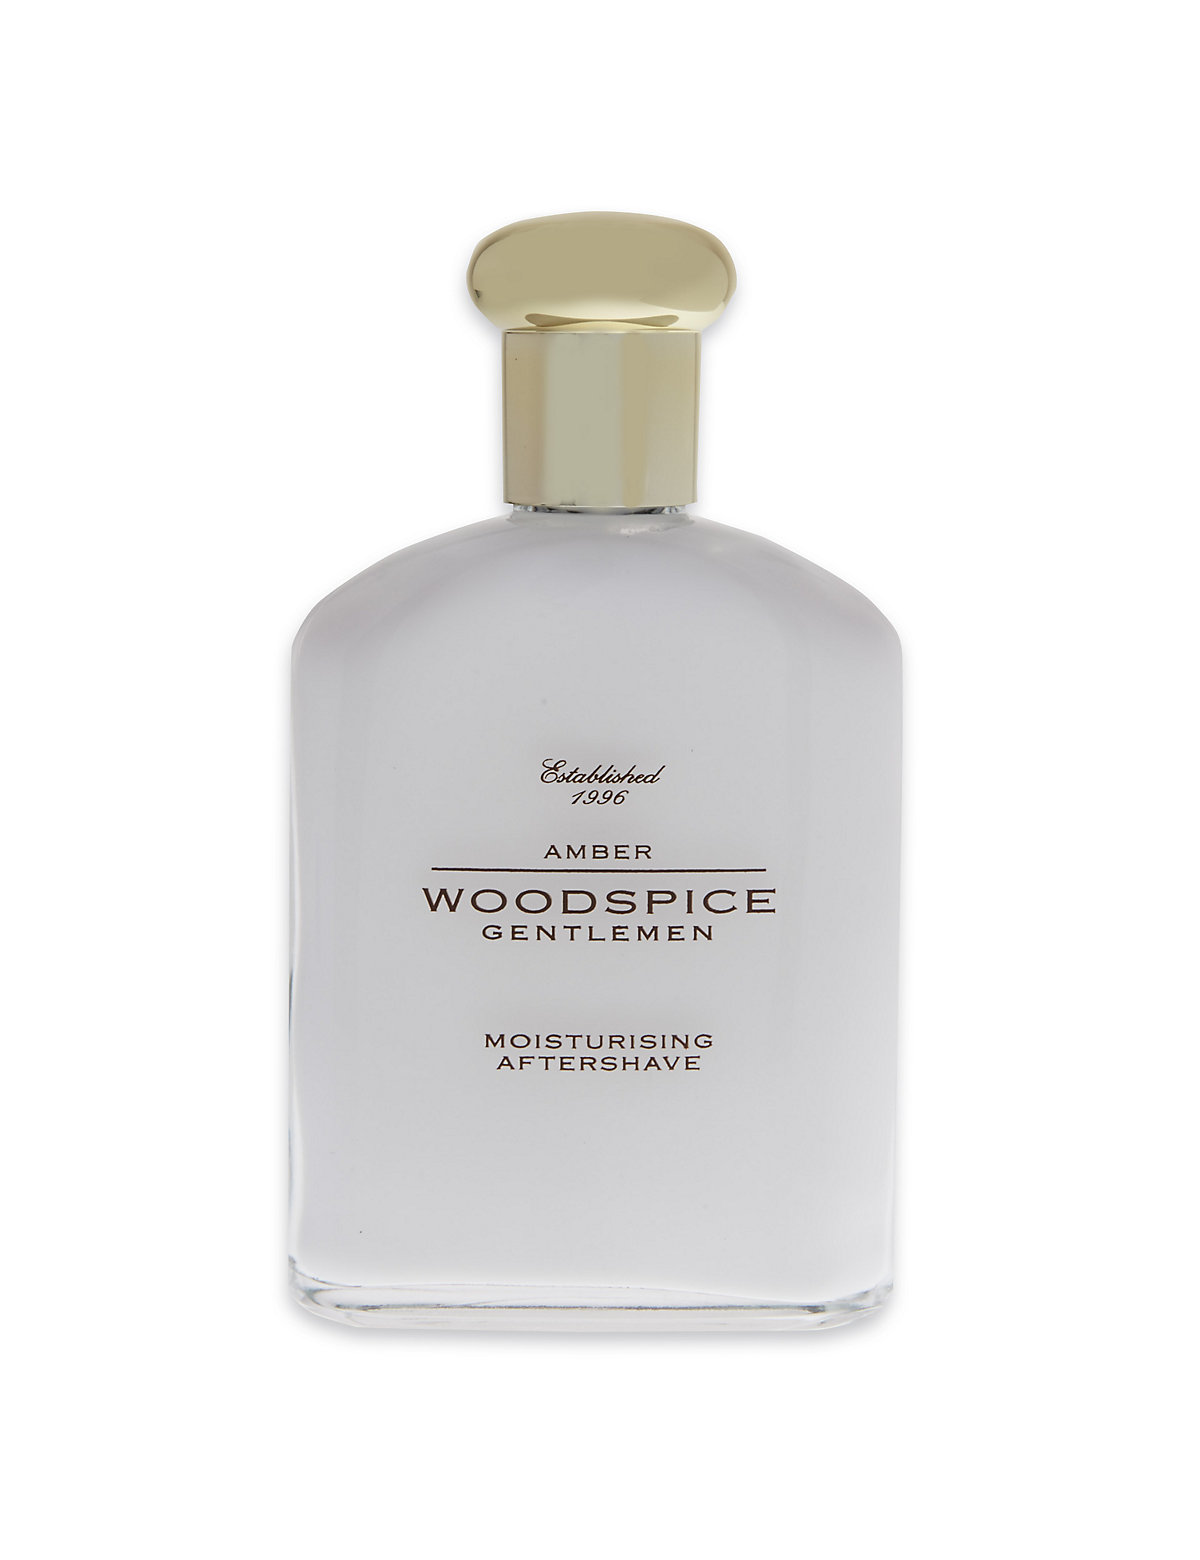 Woodspice Amber Moisturising Aftershave 100ml